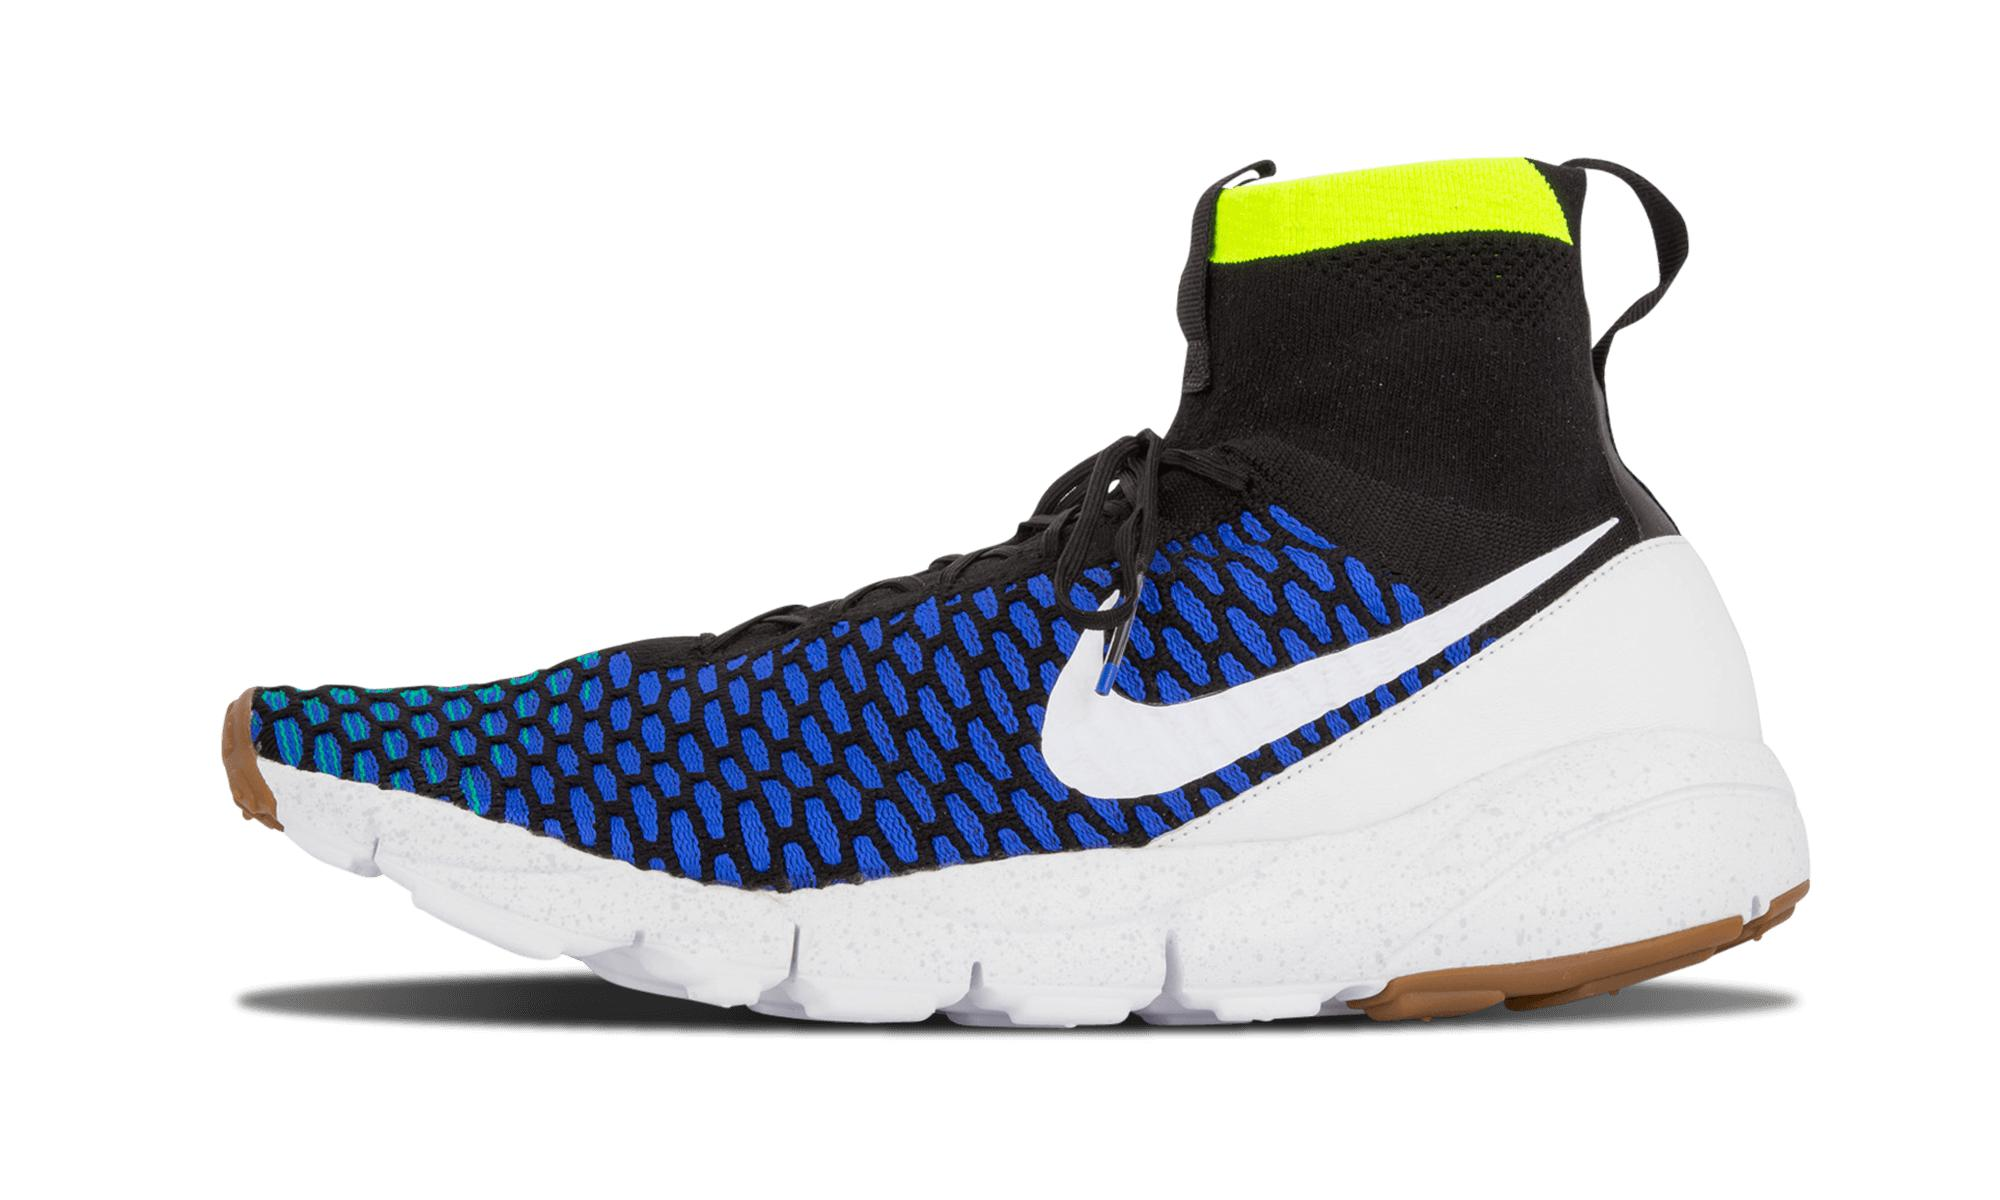 63eef59fc729 Lyst - Nike Air Footscape Magista Sp in Black for Men